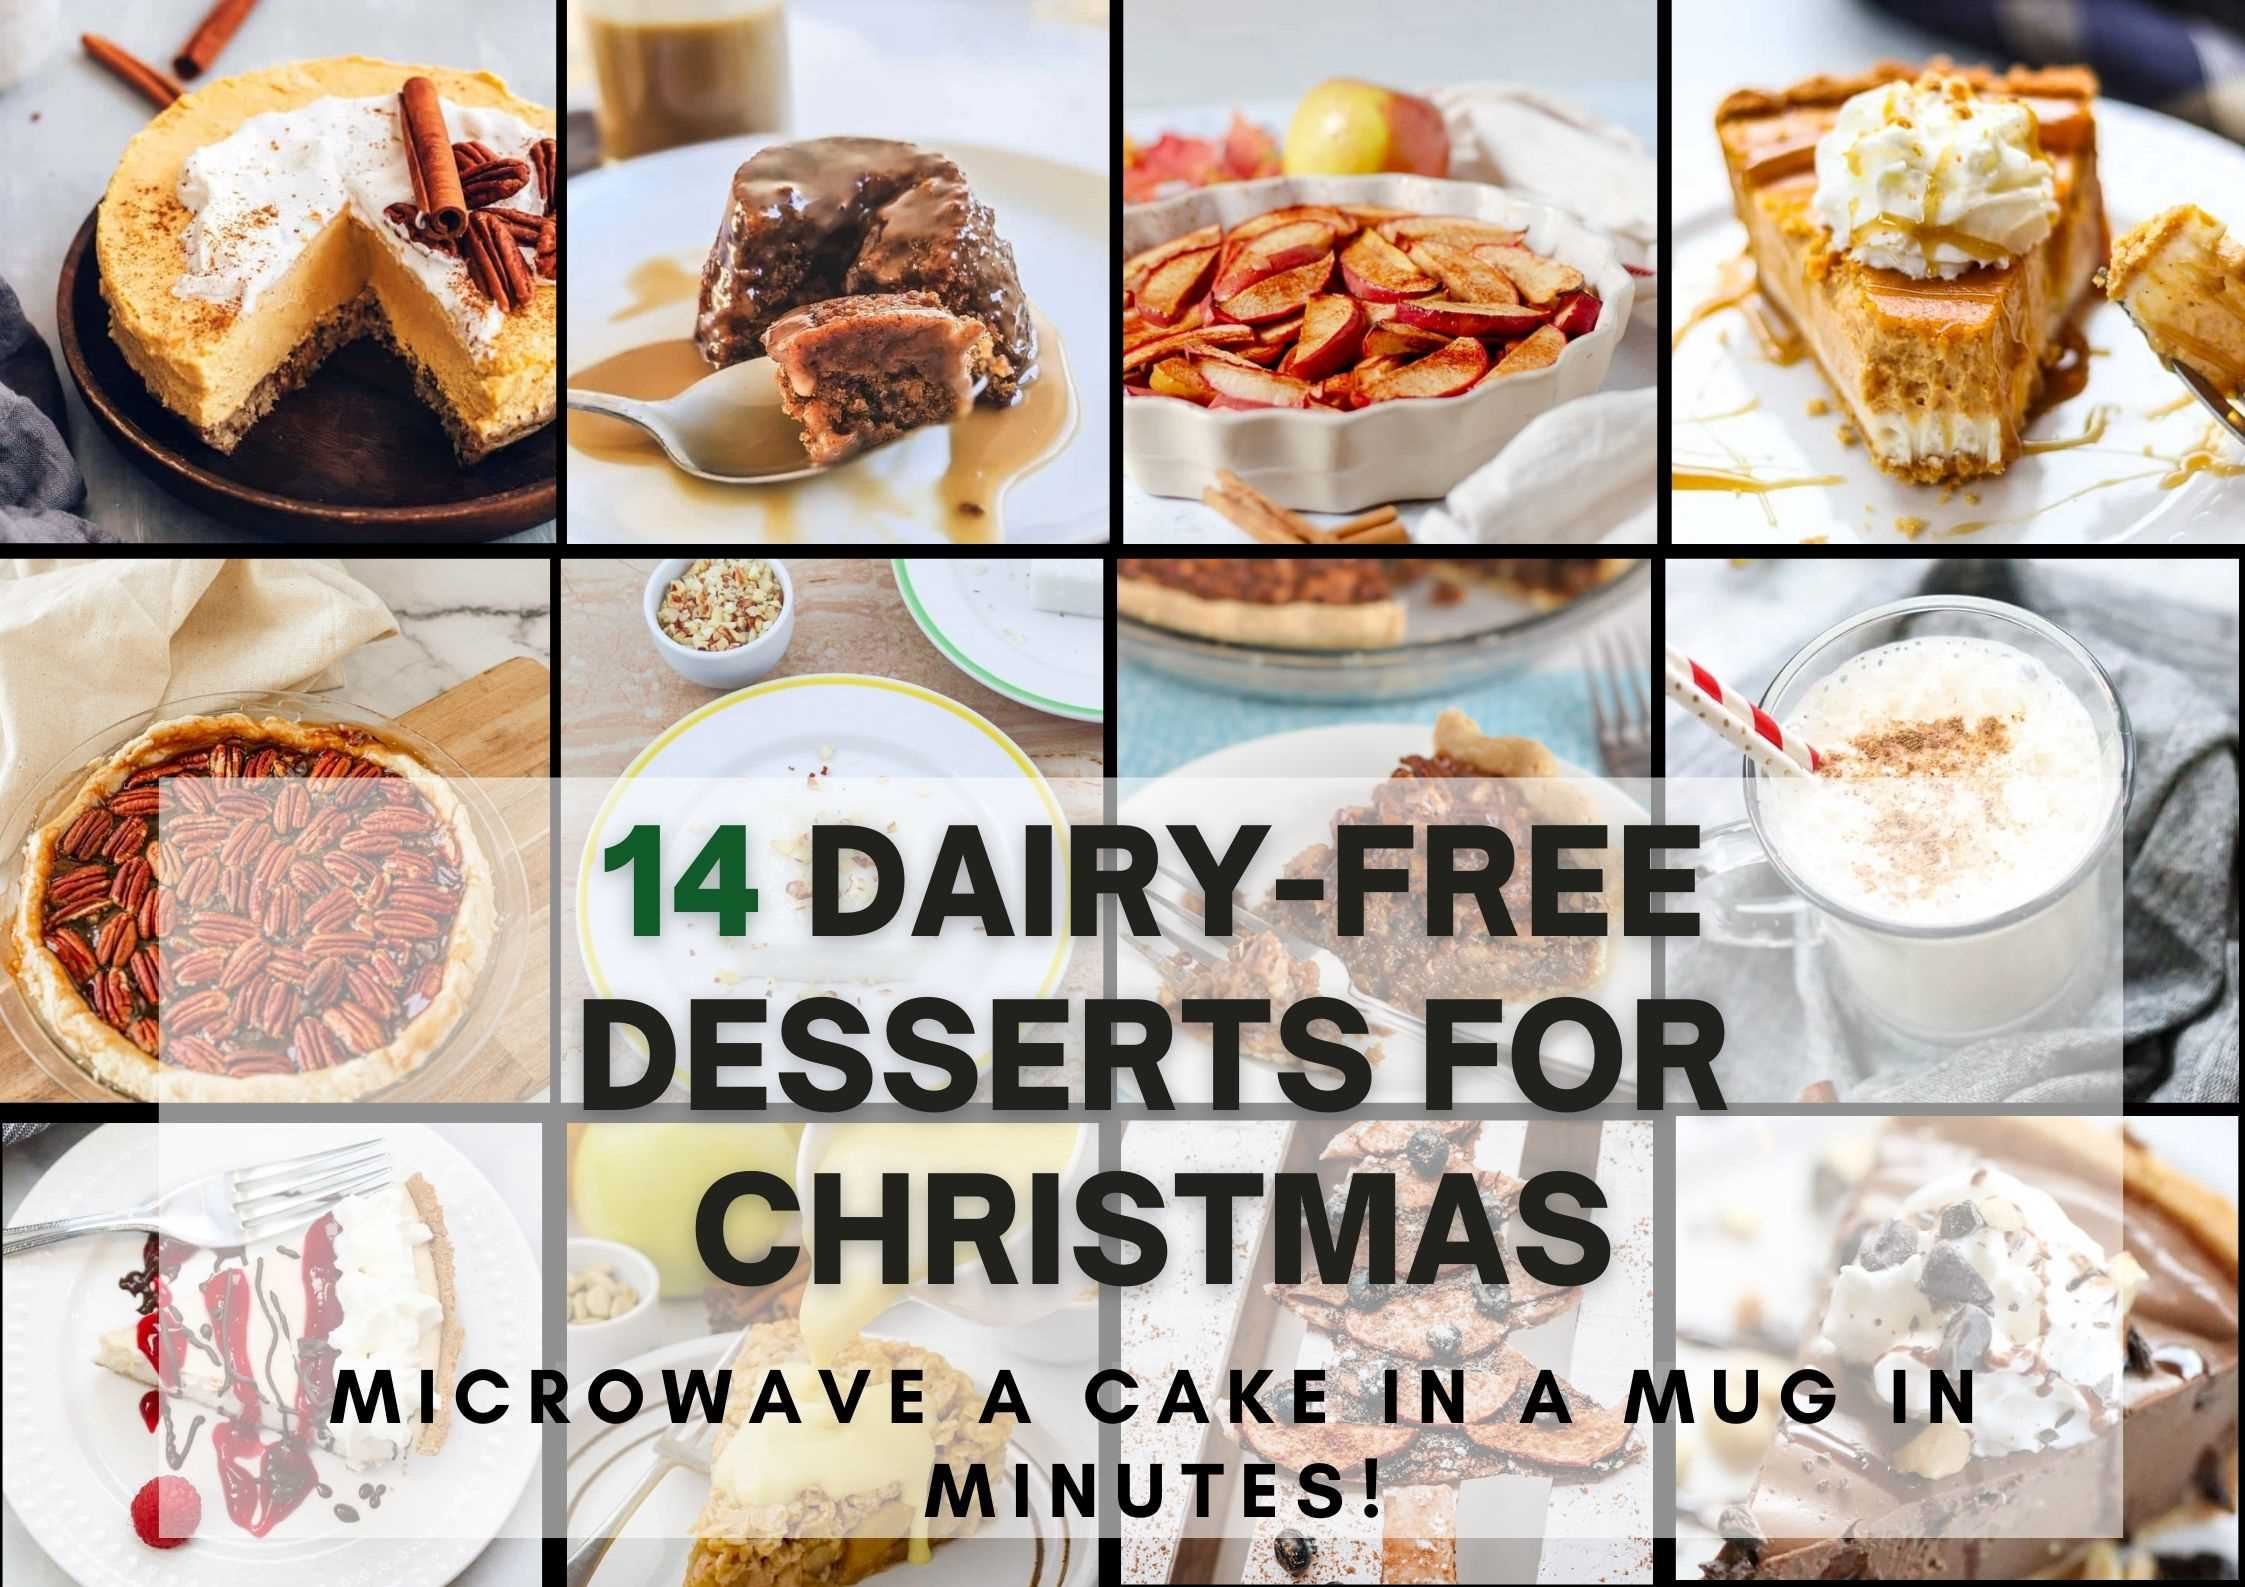 14 Dairy-Free Dessert For Christmas